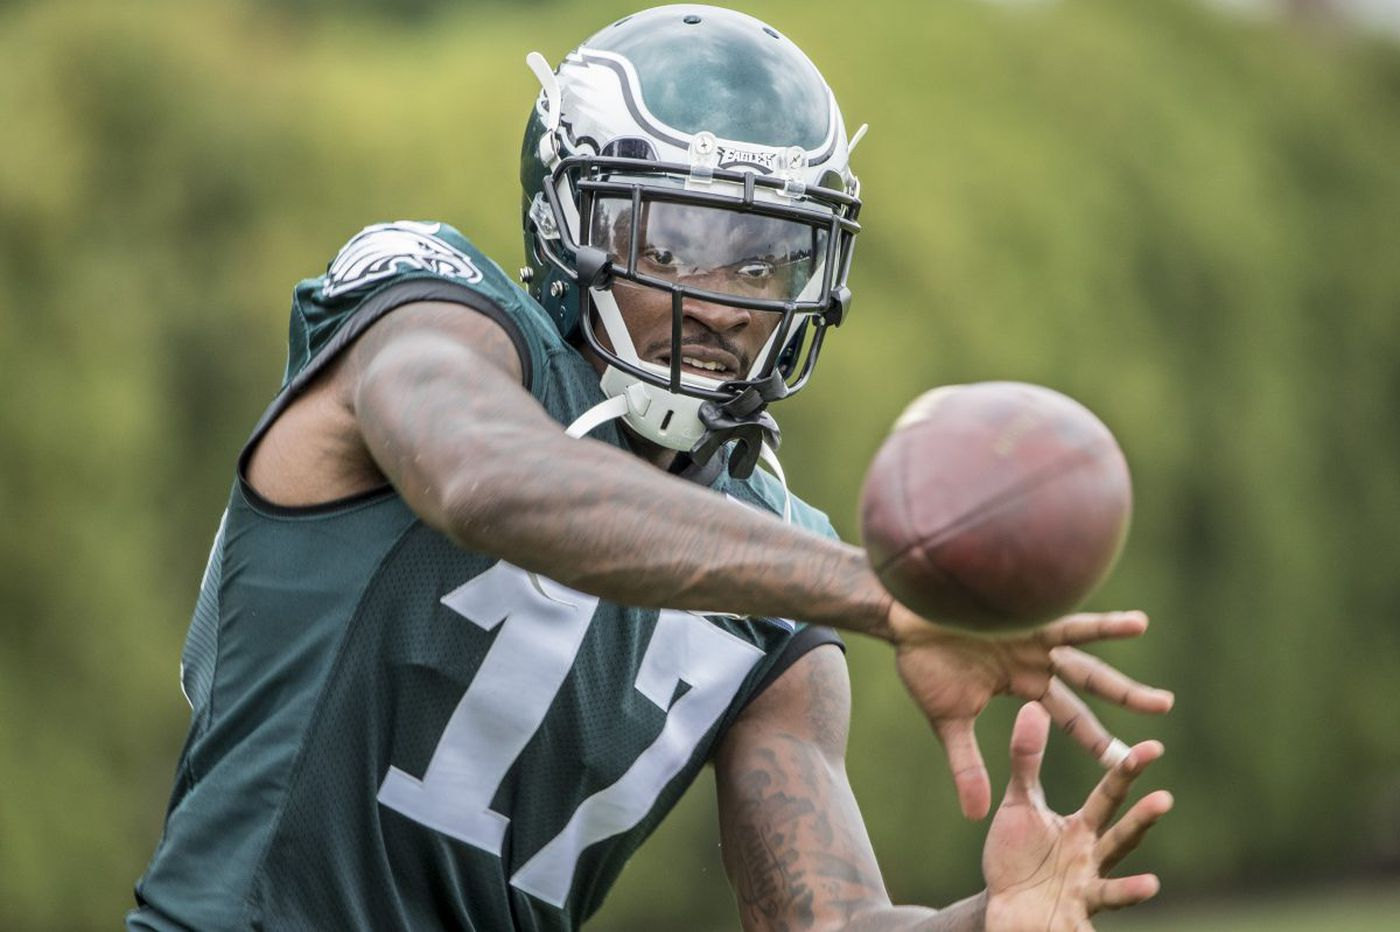 Full squad returns; an early look at the depth chart; Barnett battles Peters